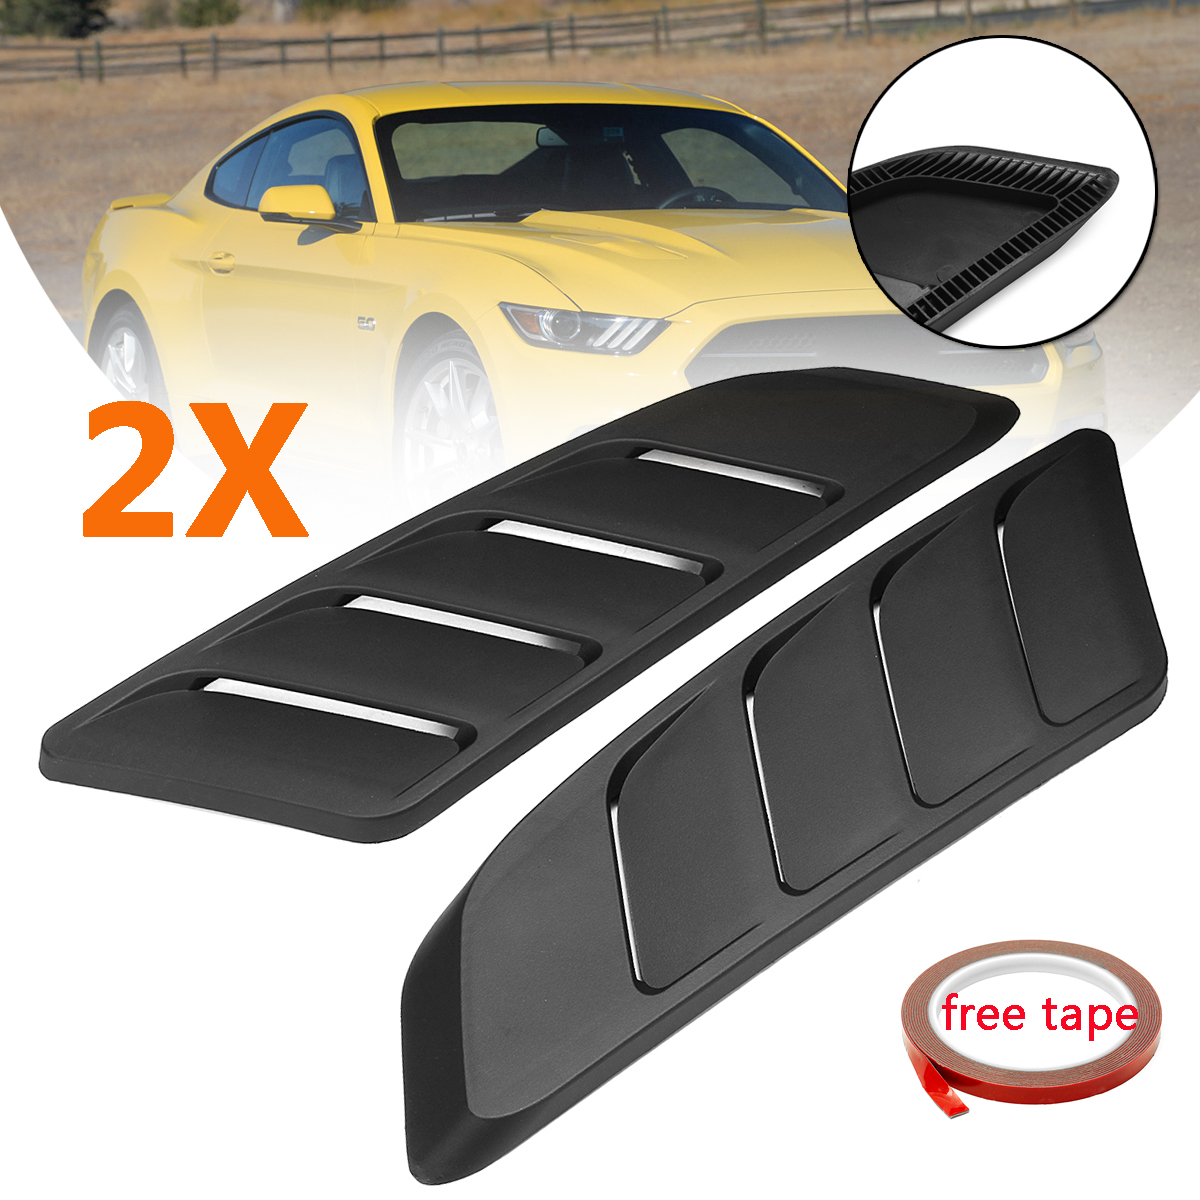 2Pcs Universal Car Air Intake Scoop Bonnet Hood Vent Front Hood Vent For Ford For Mustang 2015 2017 Panel Trim Black